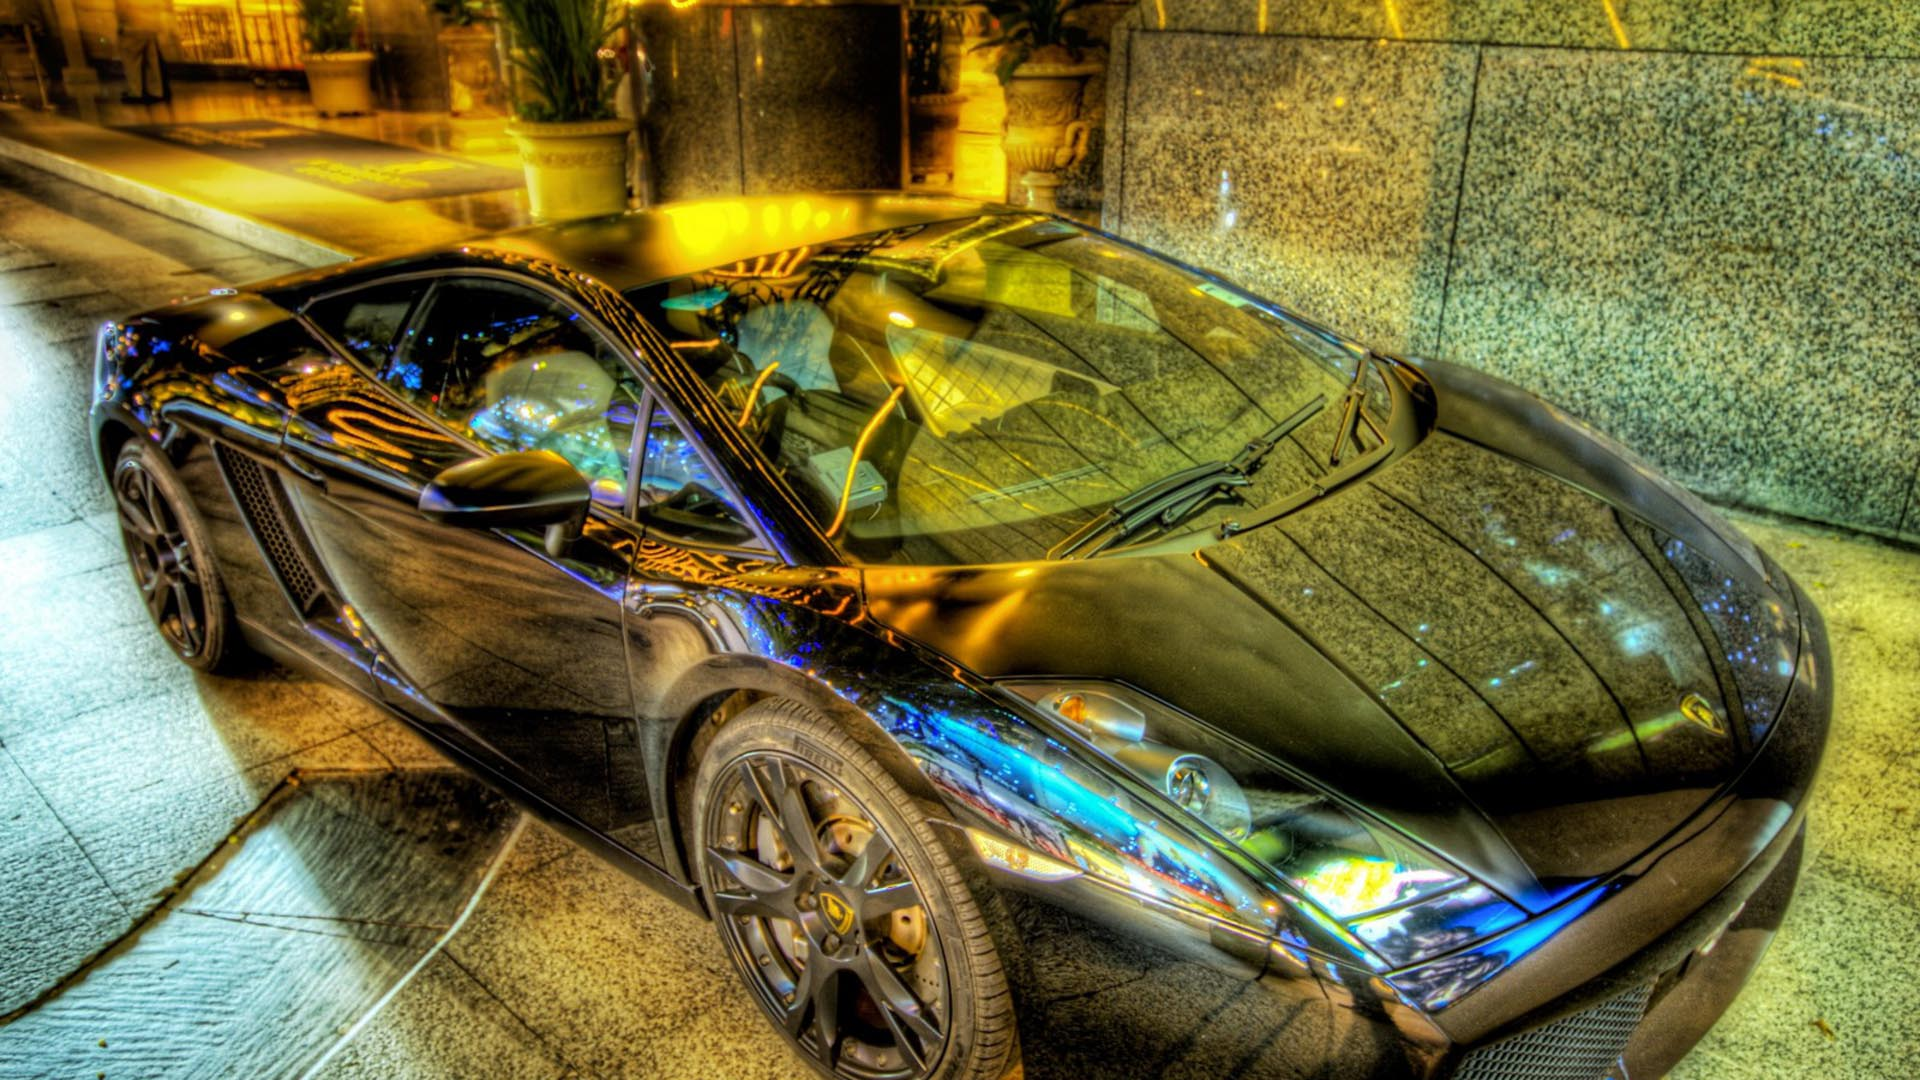 Comments To Lamborghini Wallpapers In Hd For Desktop And 1920x1080